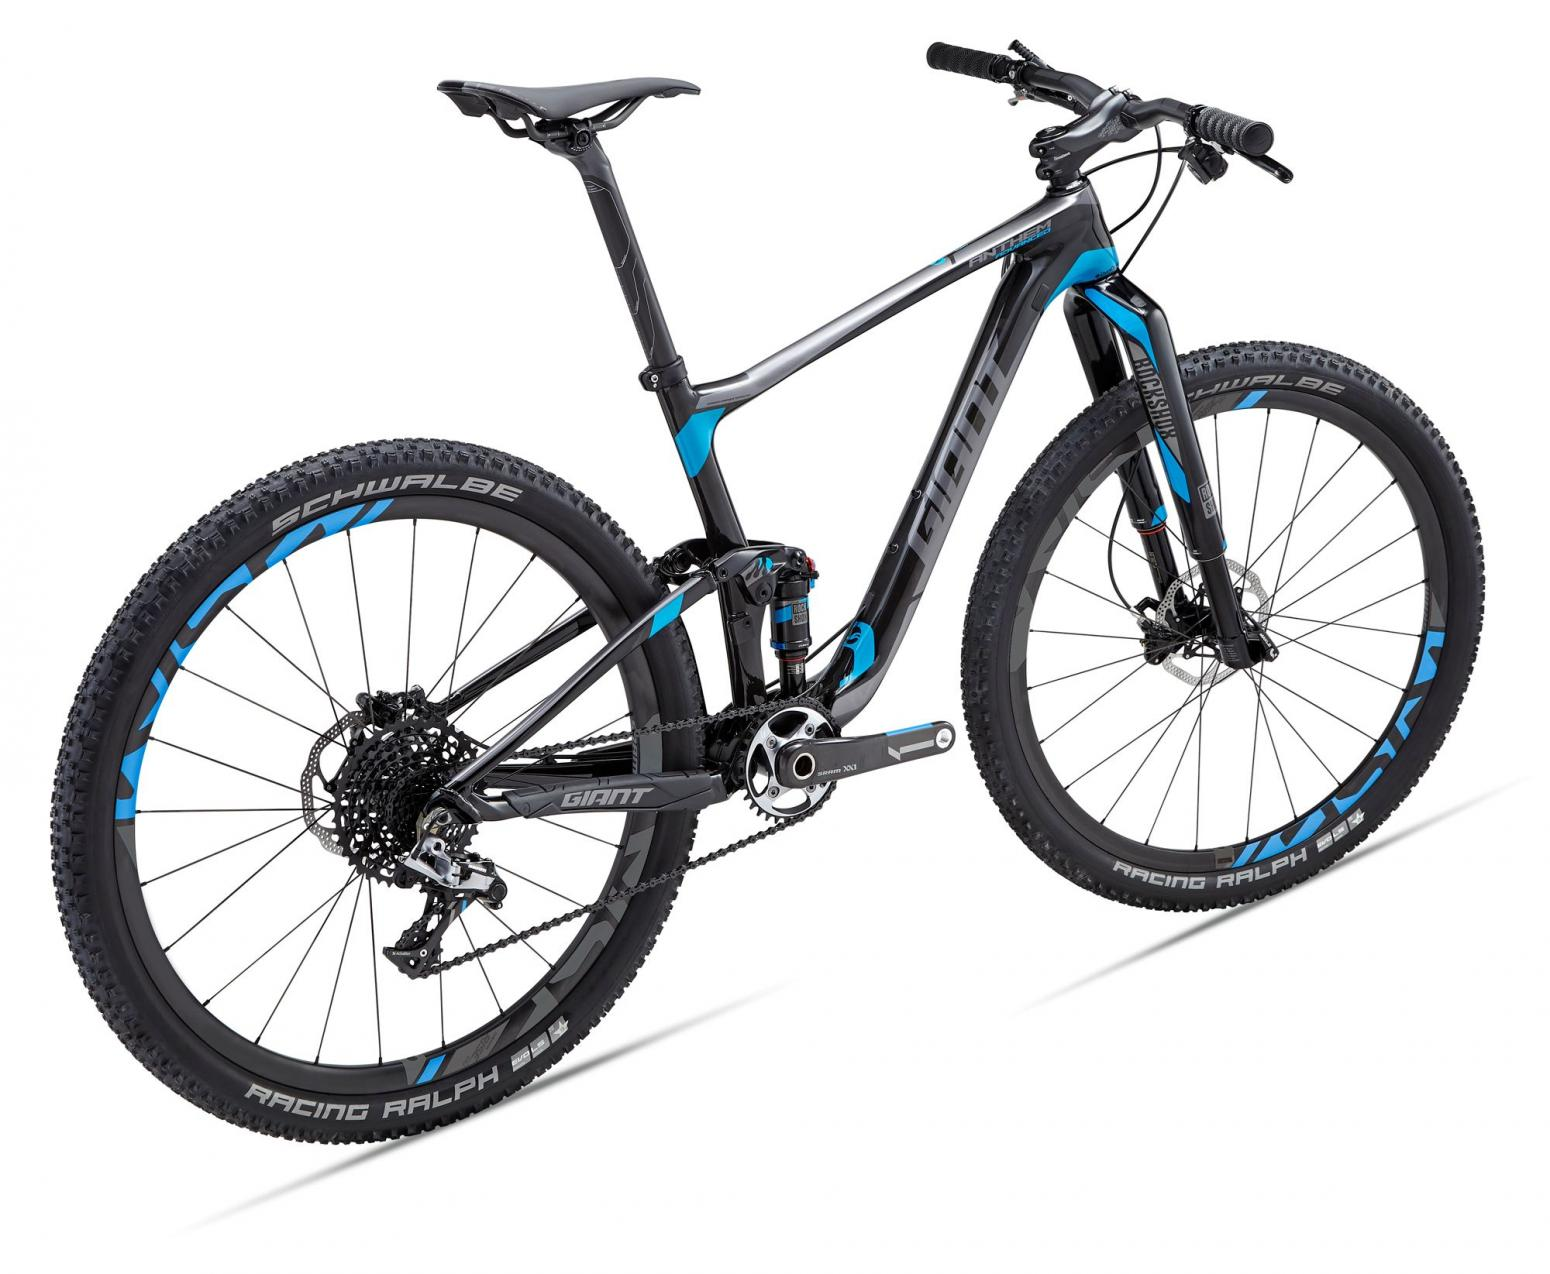 Giant MTB Trail/Race Anthem Advanced 27.5 0 2016